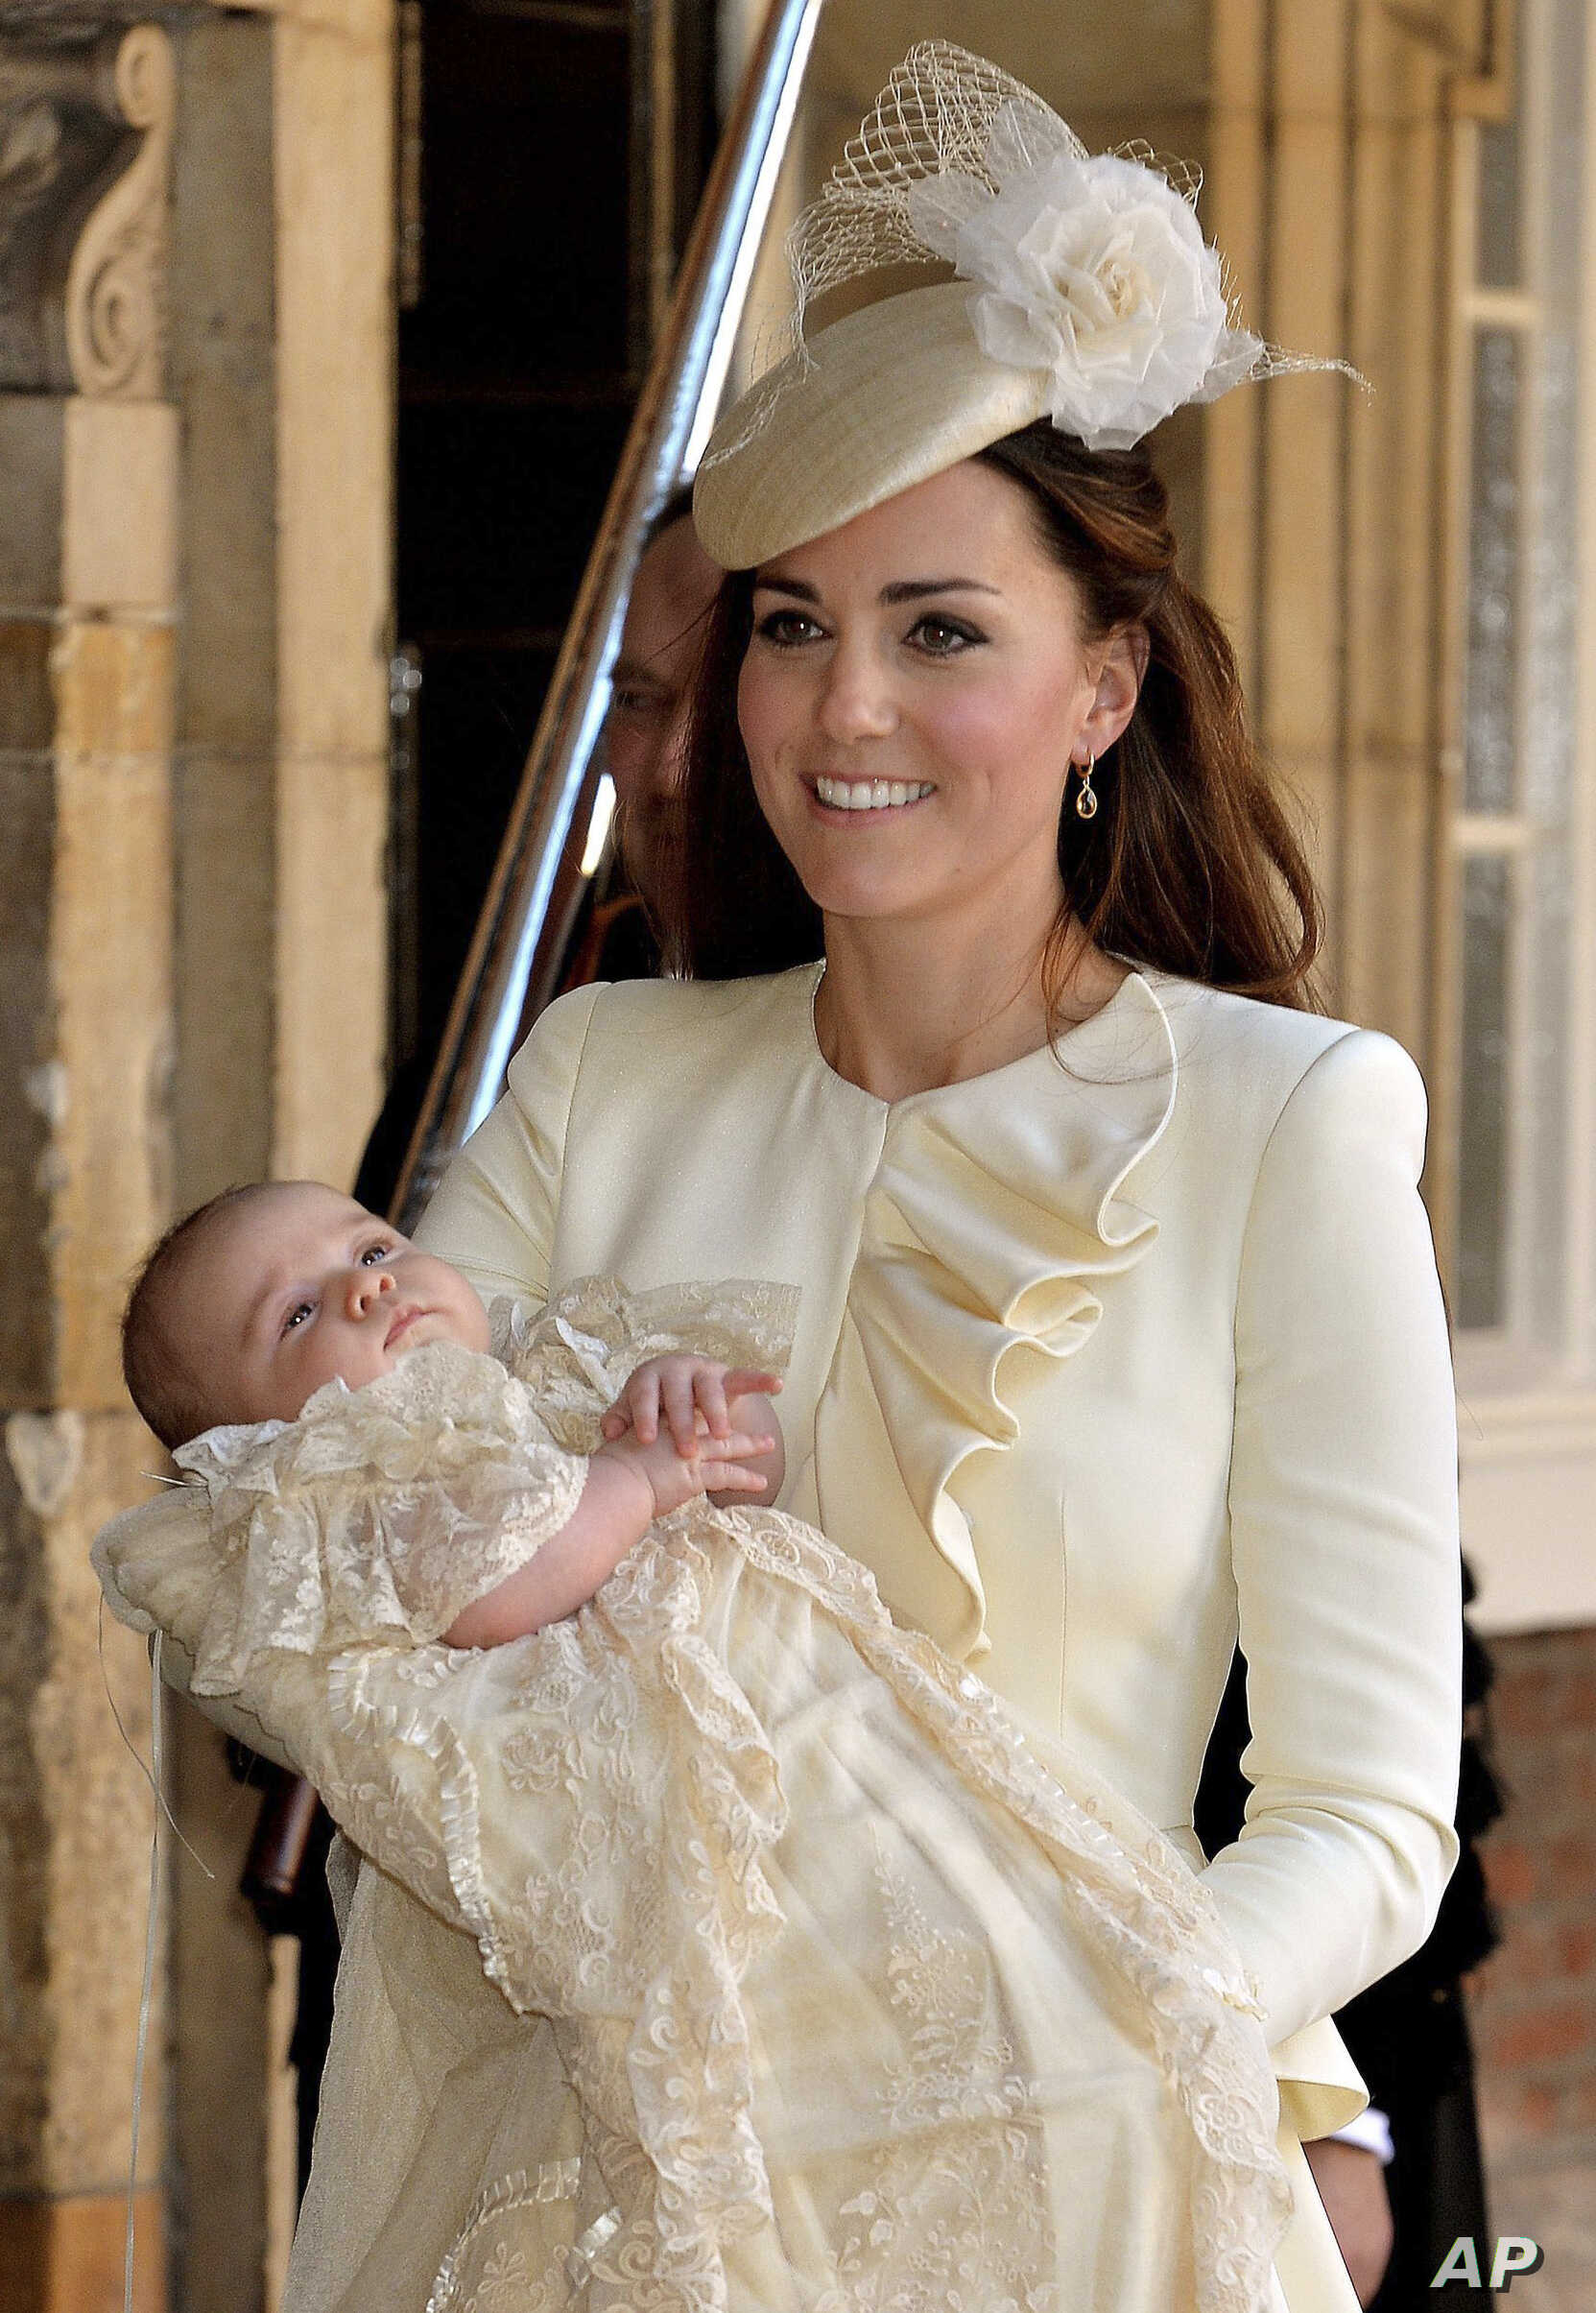 Kate, Duchess of Cambridge carries her son Prince George after his christening at the Chapel Royal in St. James's Palace in London, Oct. 23, 2013.